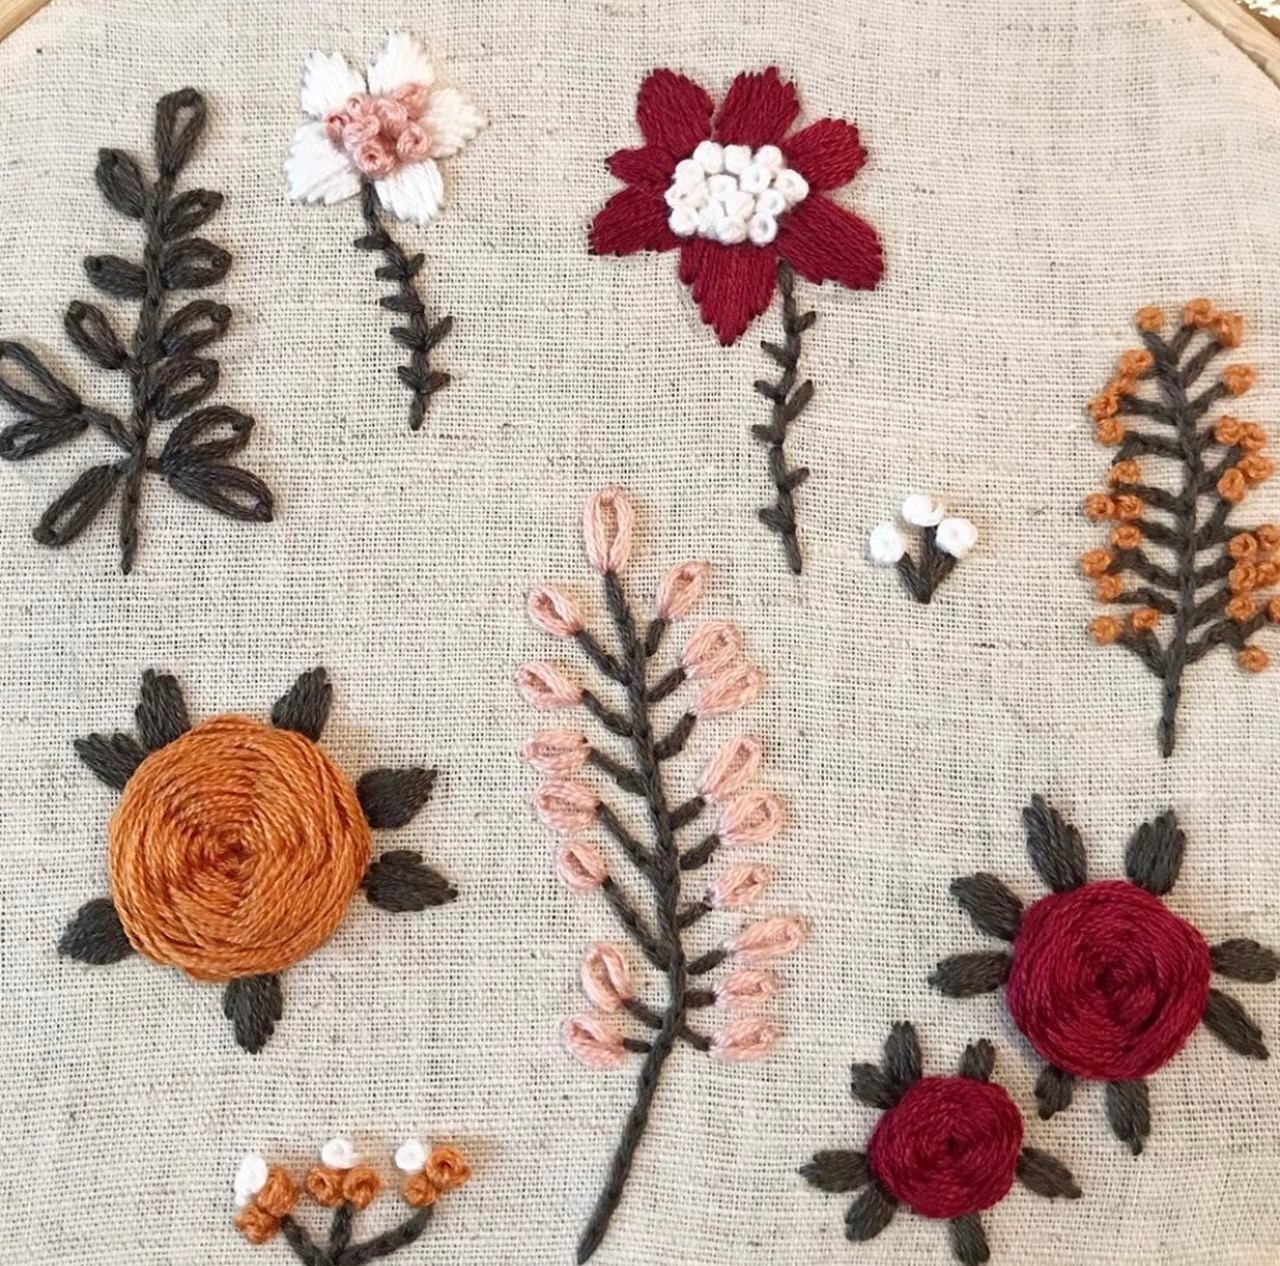 Hand Embroidery Classes at Sew Make Create